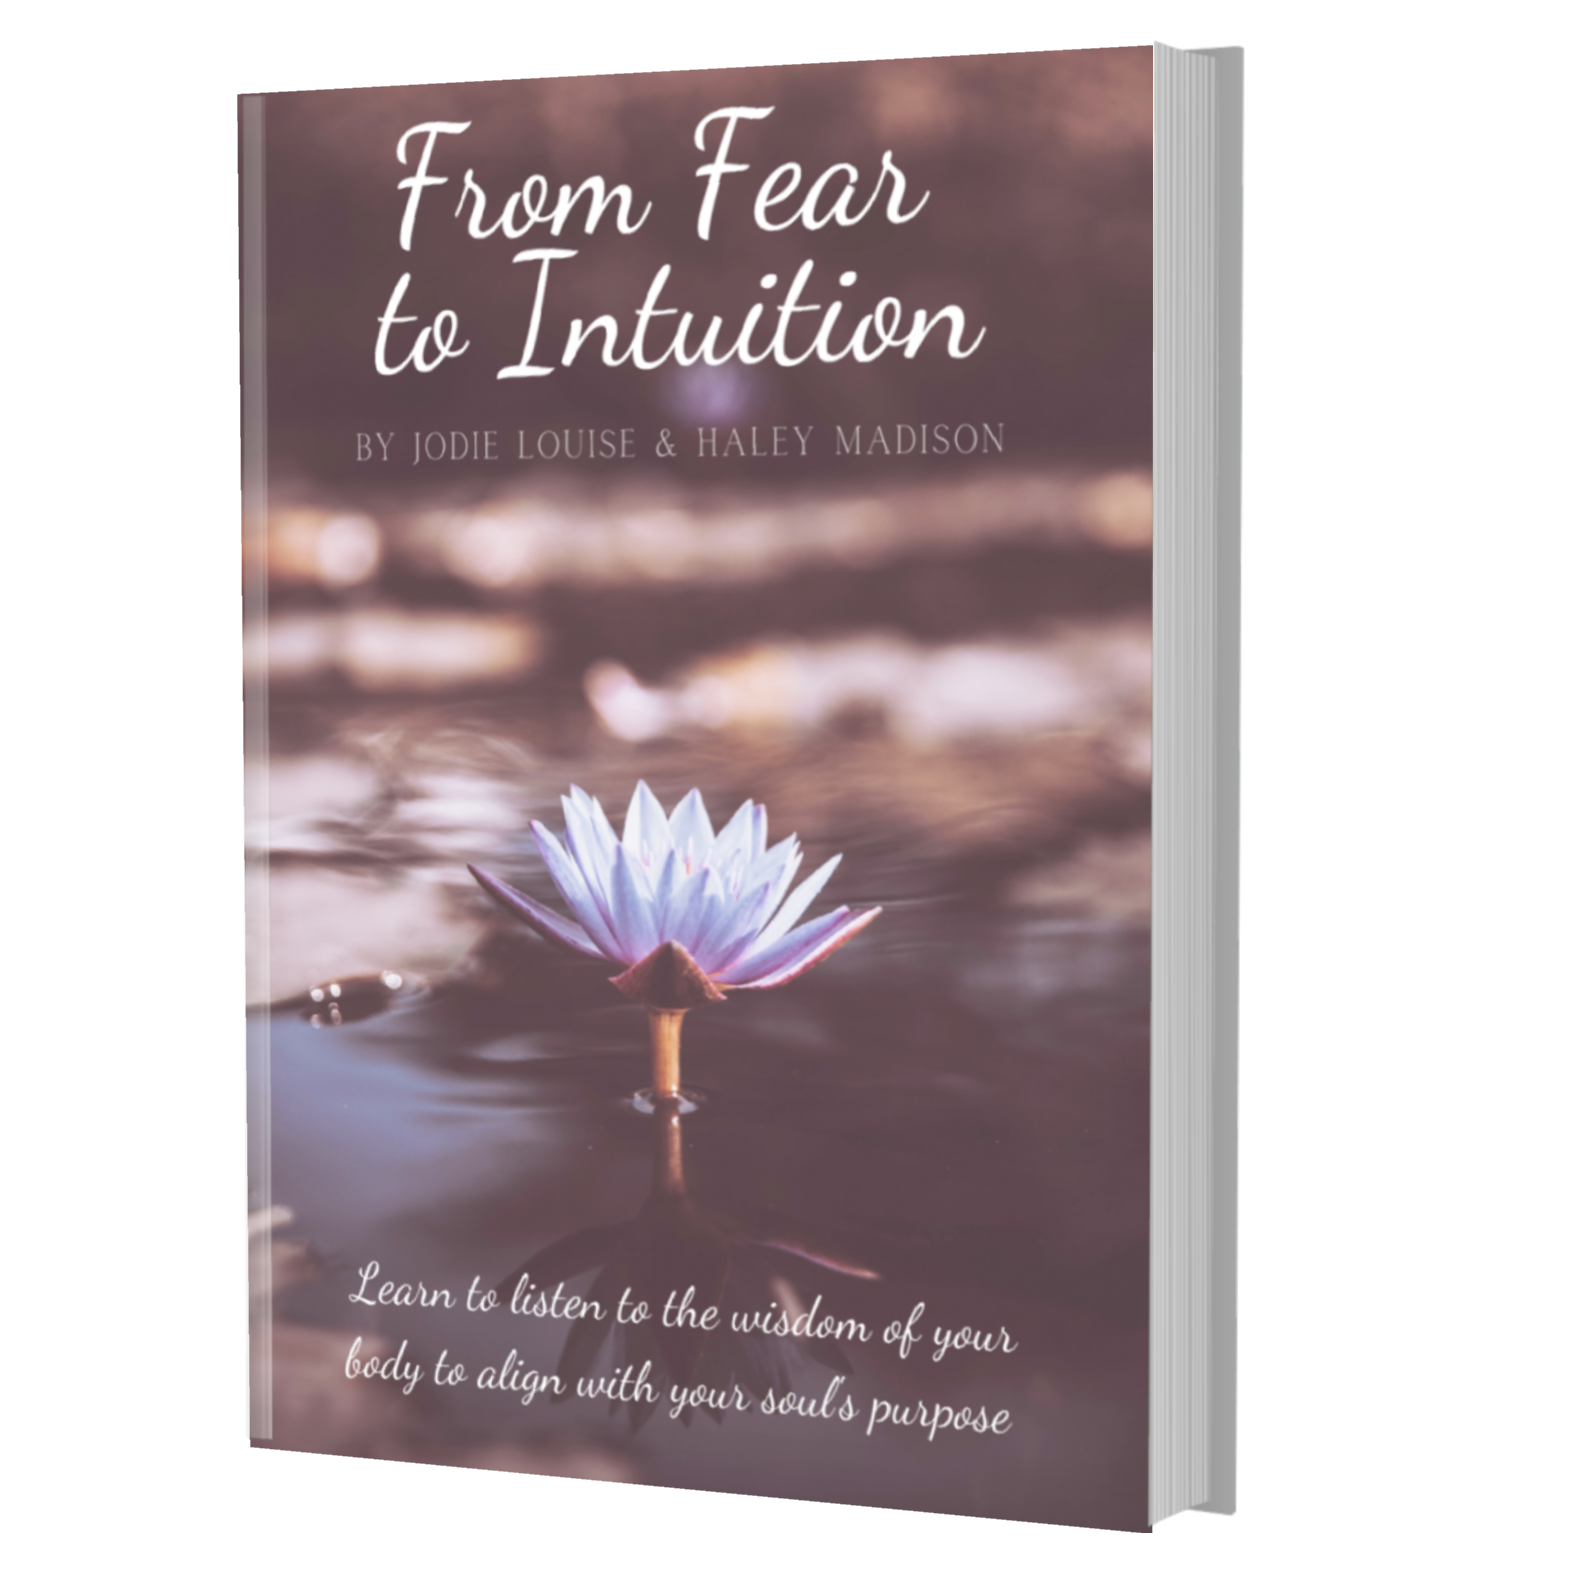 From fear to intuition book.